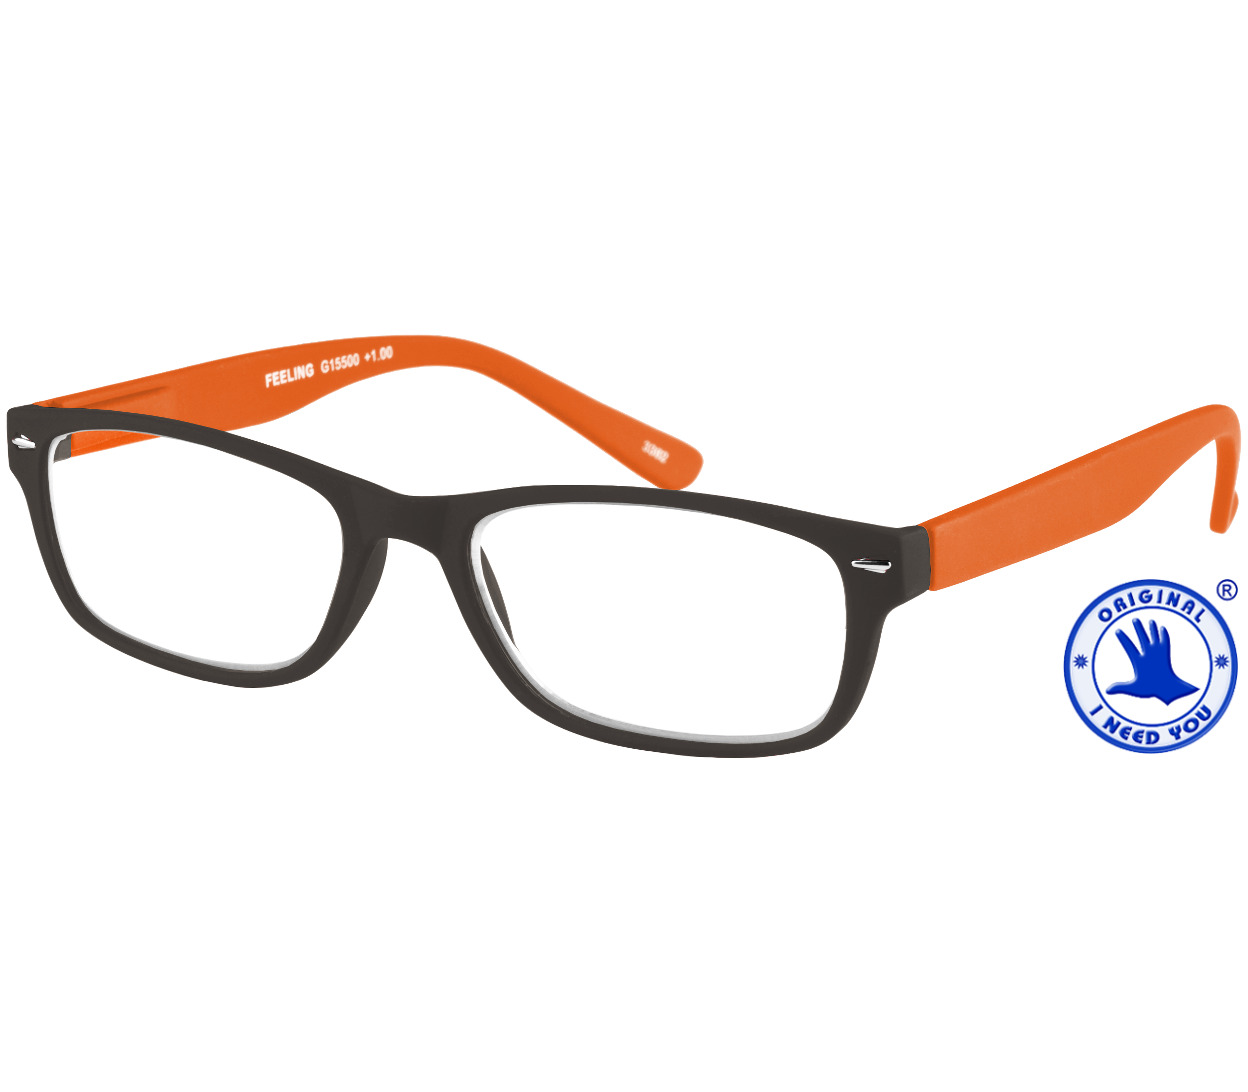 Main Image (Angle) - Feeling (Orange) Classic Reading Glasses